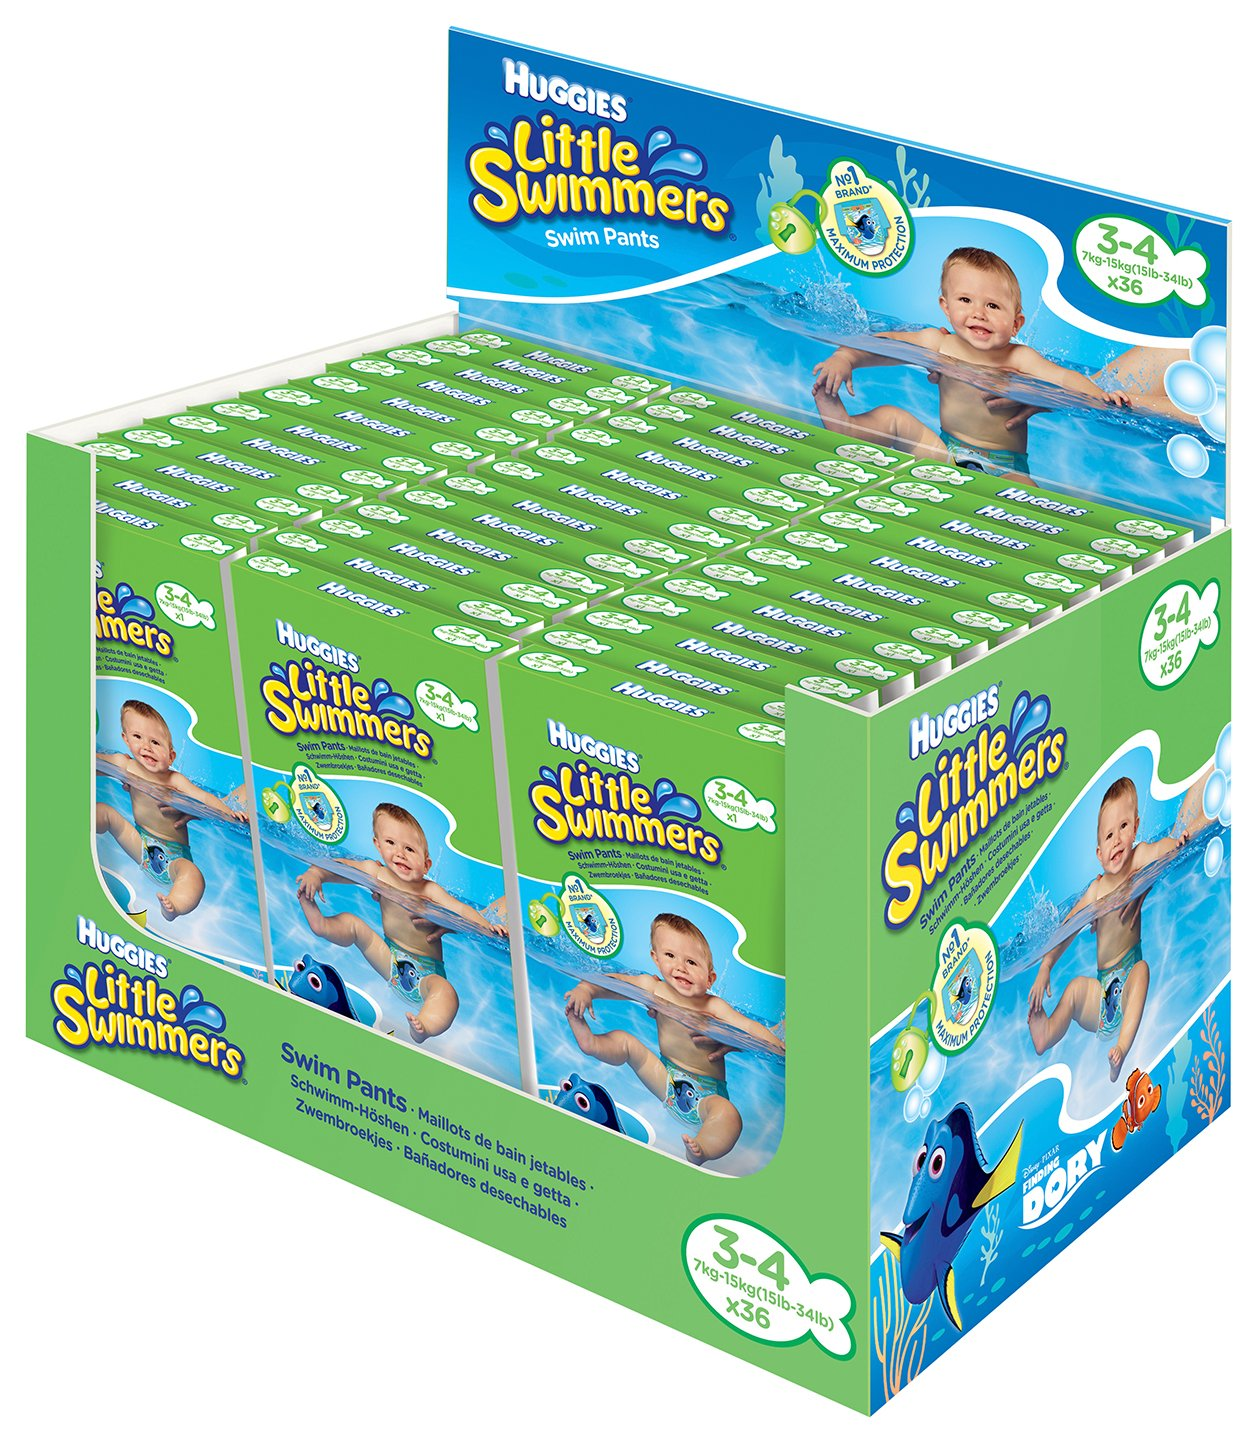 Huggies Little Swimmers Disposable Swim Nappies – Individually Packaged Size 3-4 (36) 29204_Display